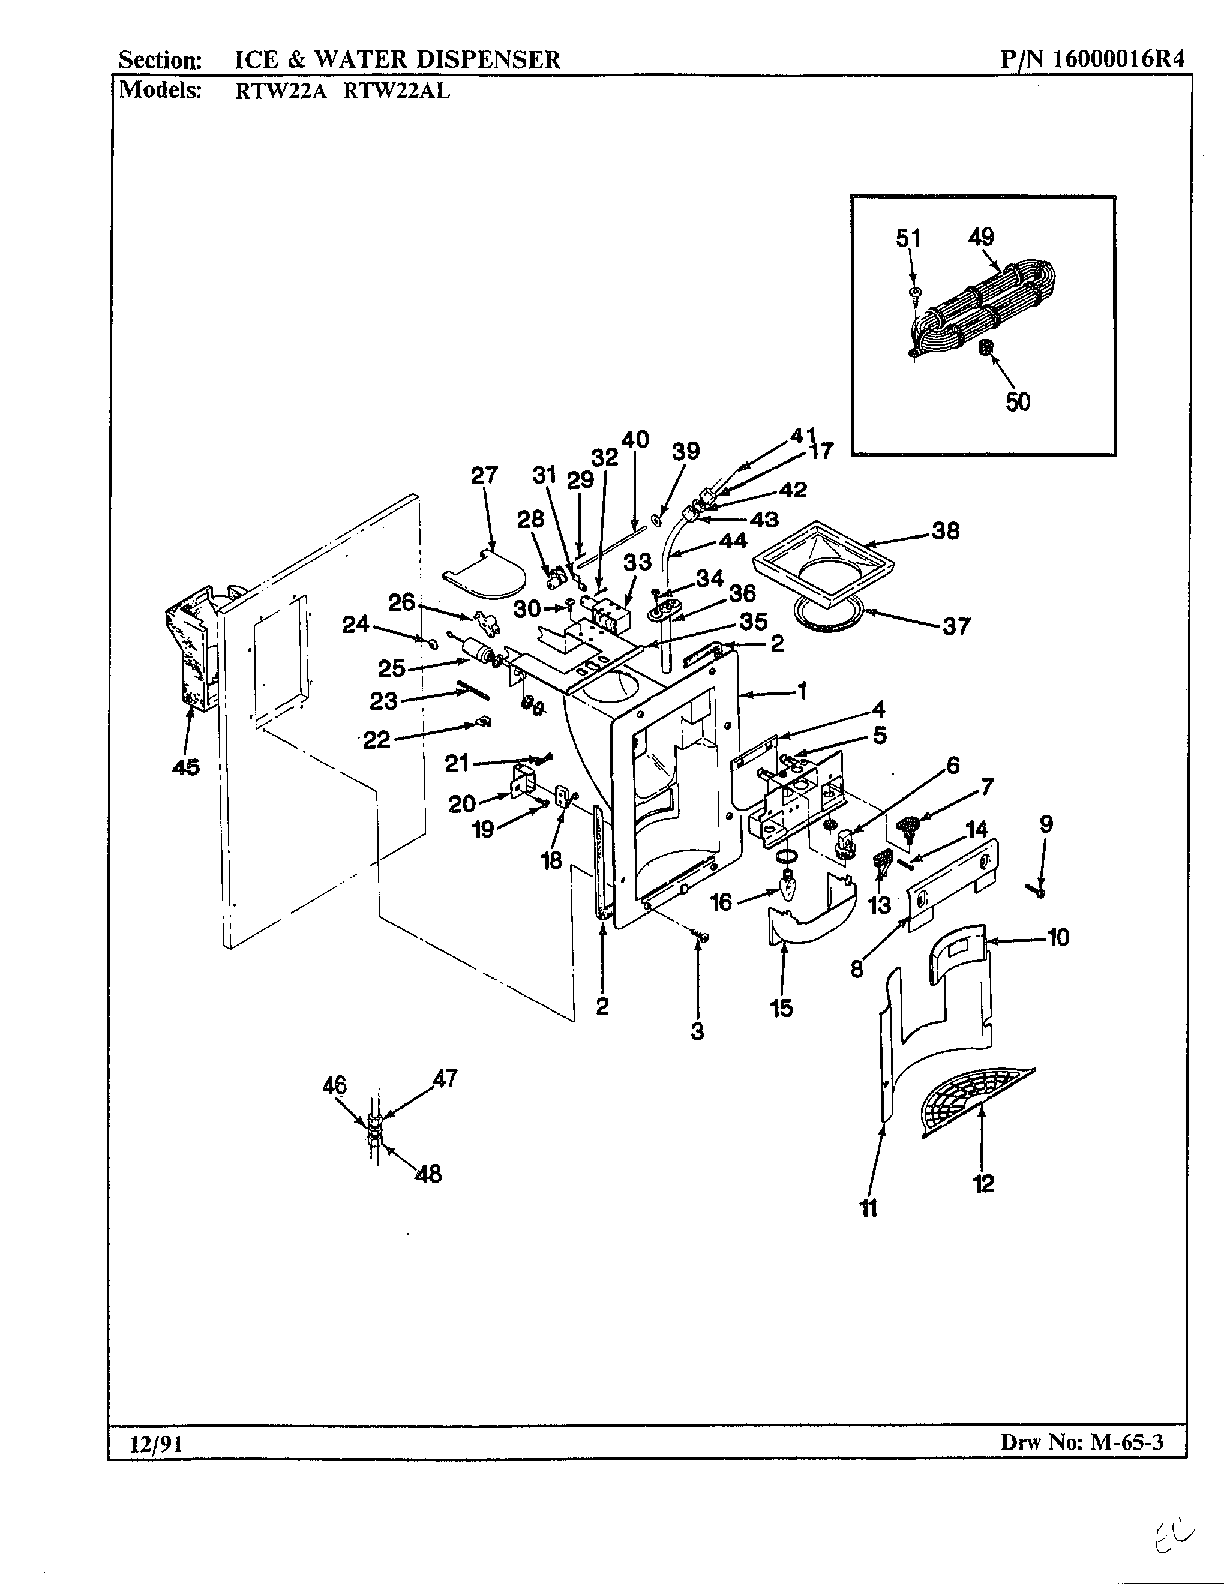 ICE AND WATER DISPENSER Diagram & Parts List for Model